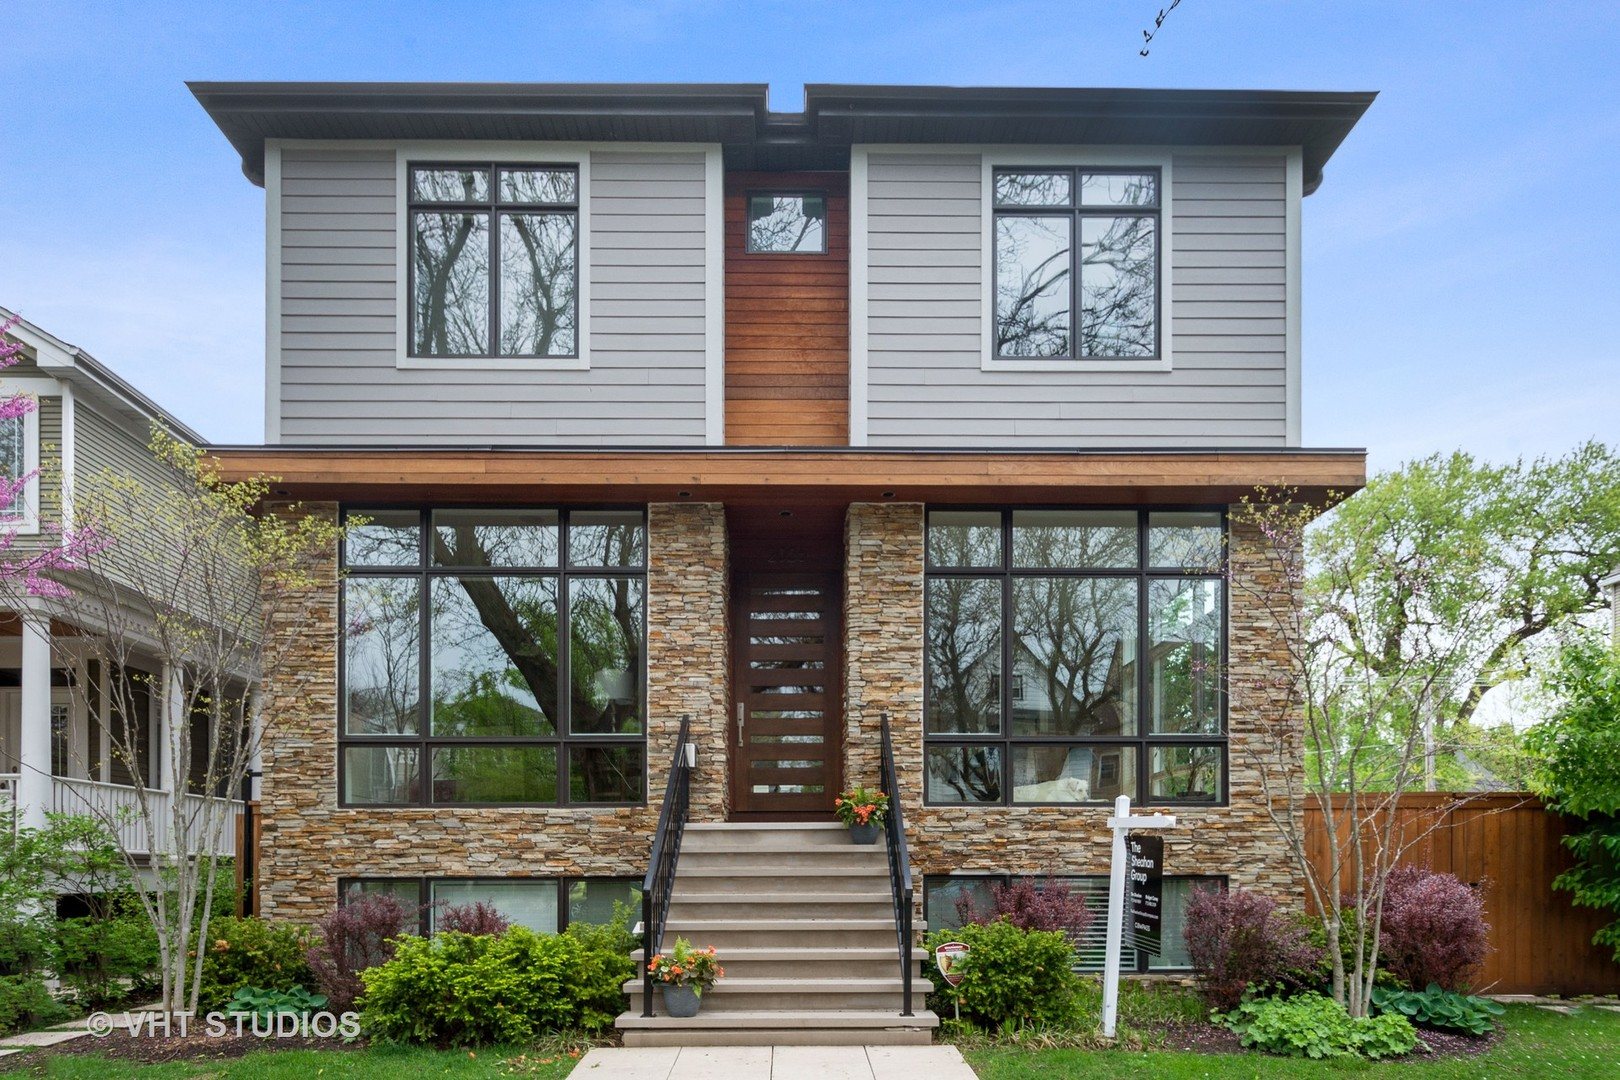 2026 WEST WILSON AVENUE, CHICAGO, IL 60625